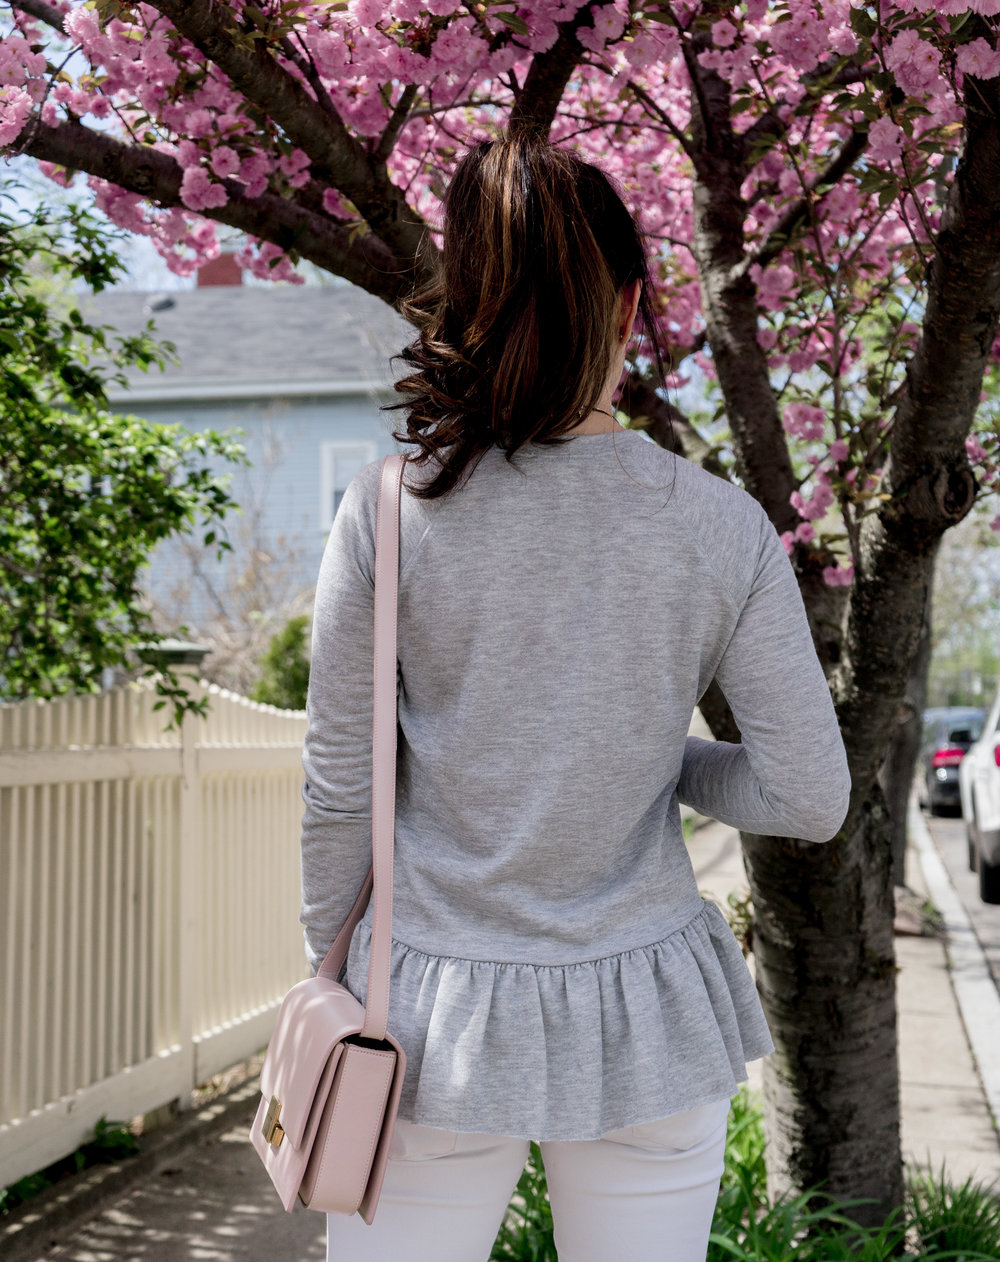 Casual Weekends with Gray Peplum Sweatshirt: TheNinesBlog.com - A Boston Blog